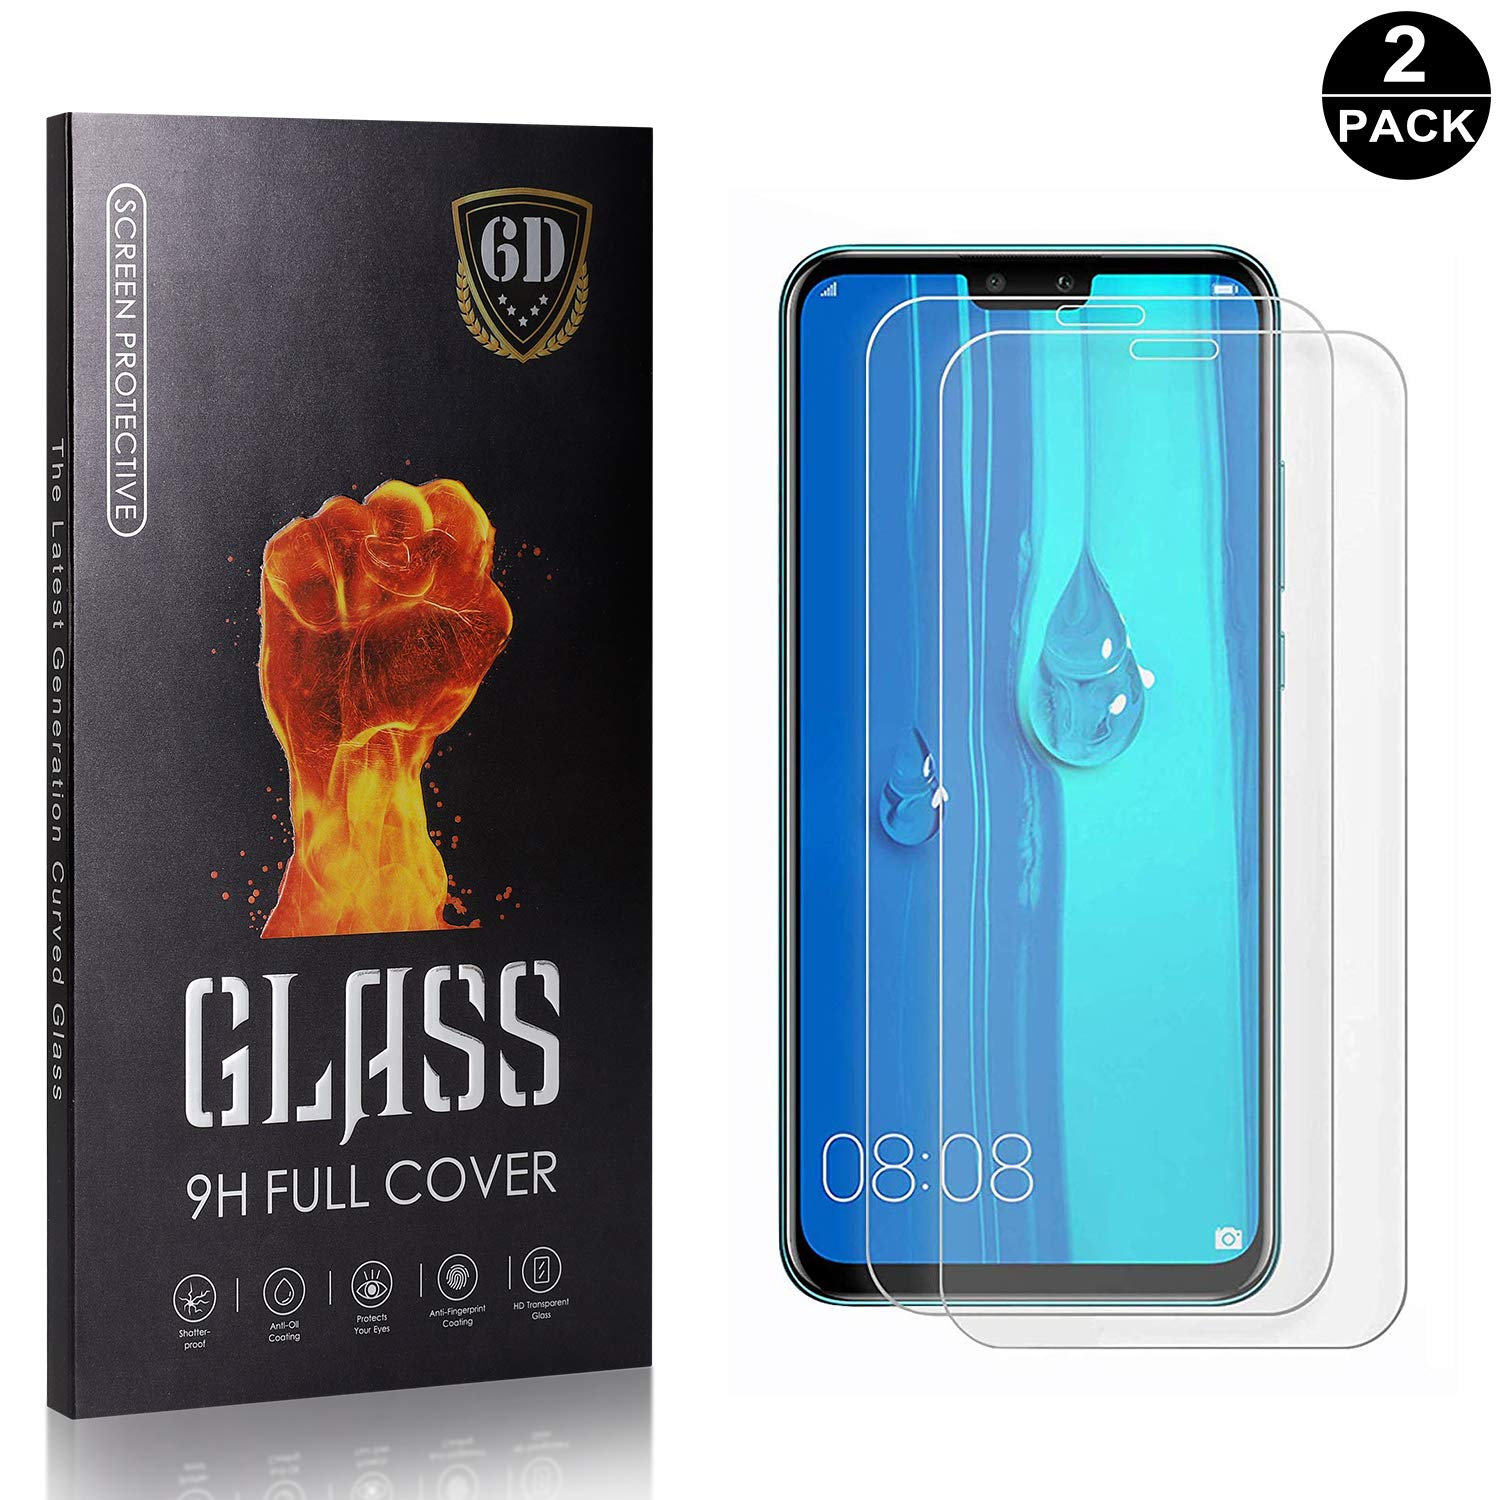 Easy Installation Bear Village Huawei Y9 2019 Tempered Glass Screen Protector 2 Pack Anti Fingerprint 9H Hardness Screen Protector Film for Huawei Y9 2019